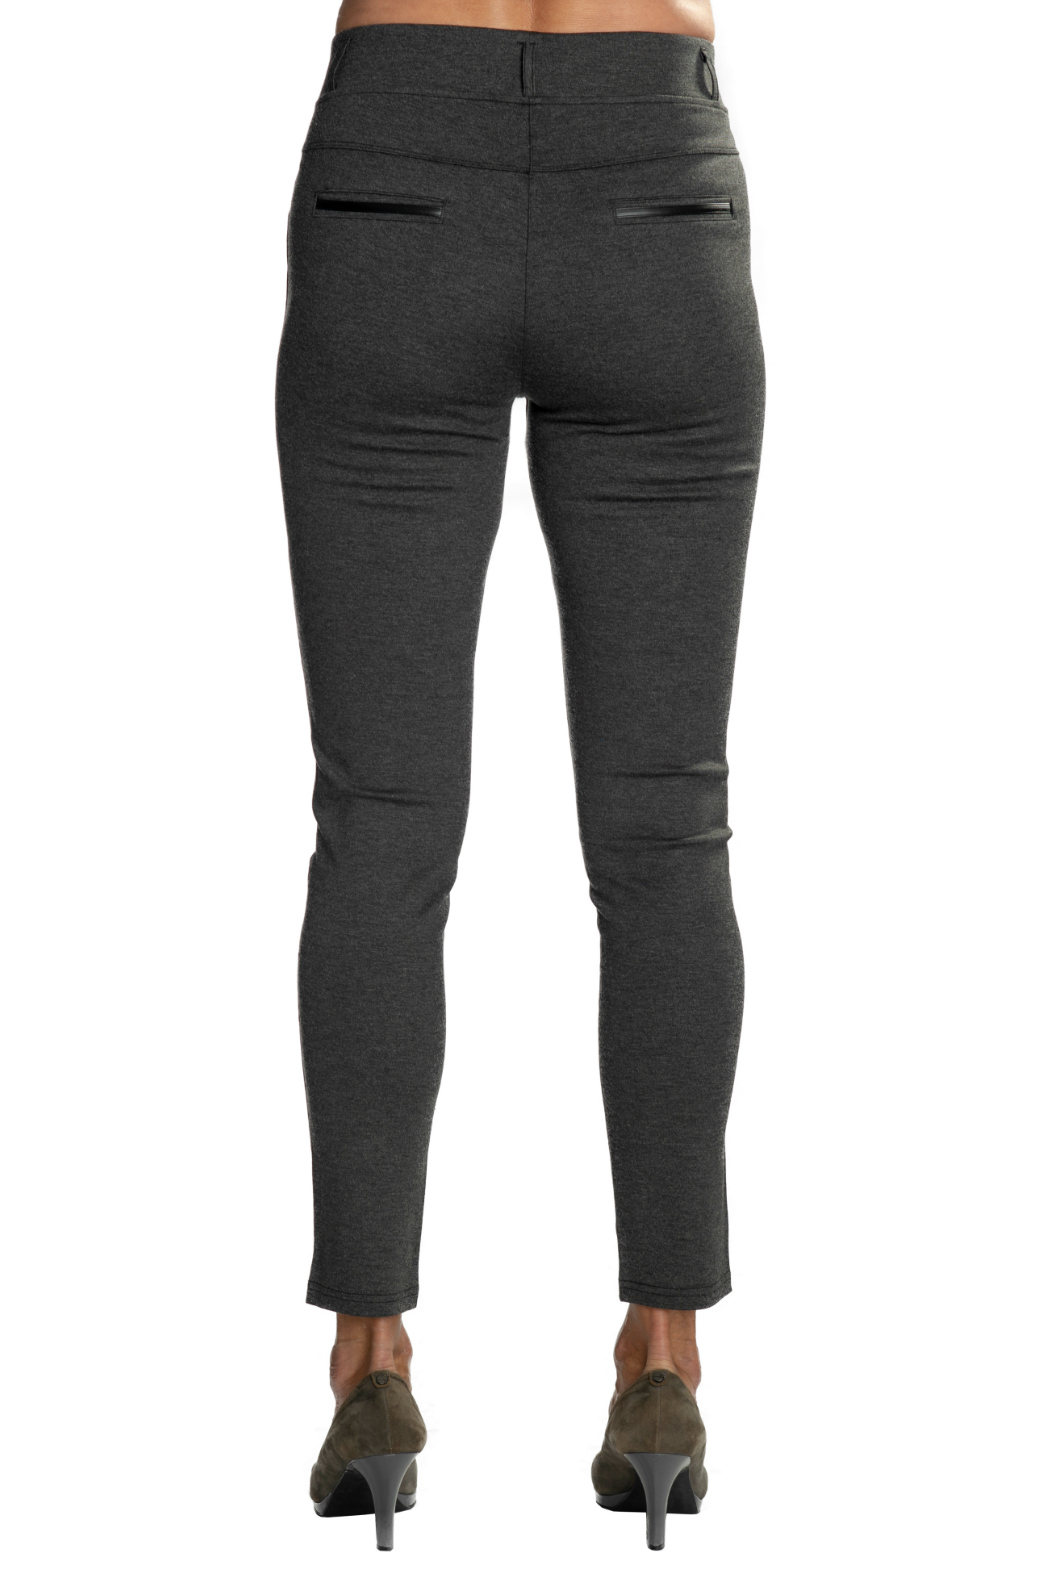 Patrizia Luca Charcoal  pull-on Jegging with Leather Side Stripe - Side Cropped Image